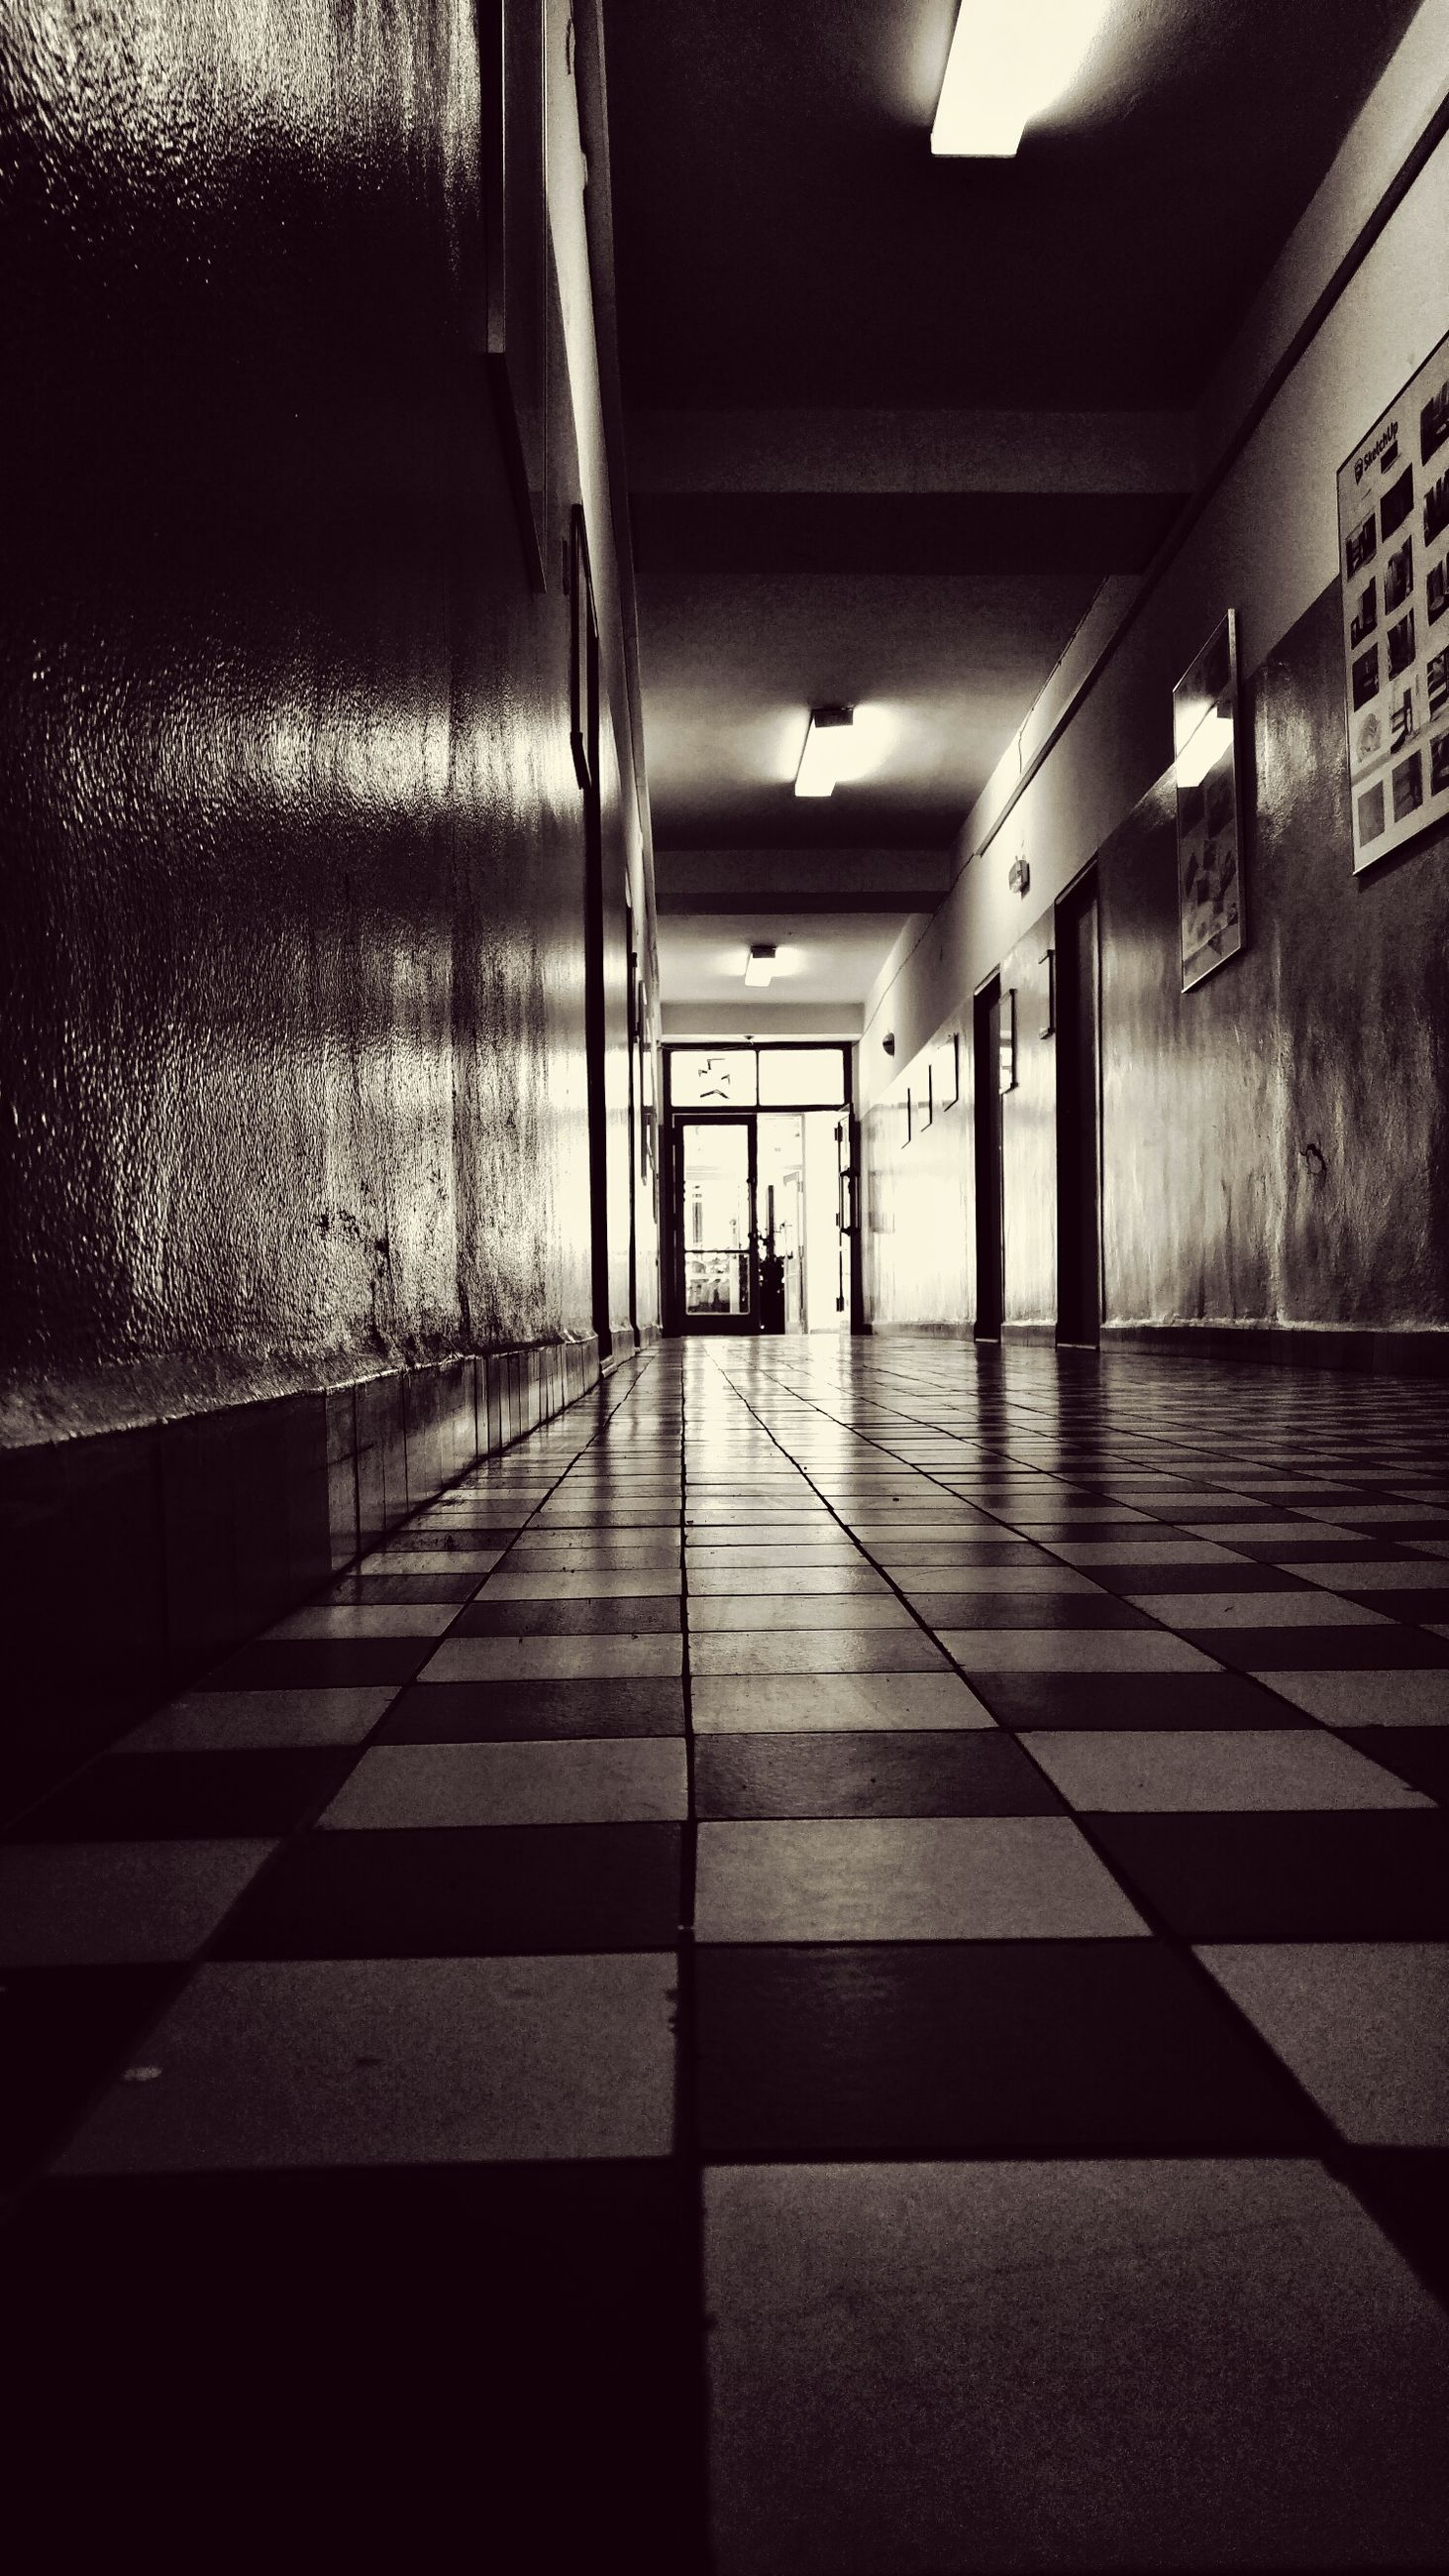 indoors, architecture, built structure, the way forward, corridor, ceiling, empty, illuminated, flooring, tiled floor, lighting equipment, diminishing perspective, door, absence, building, architectural column, wall - building feature, window, walkway, no people